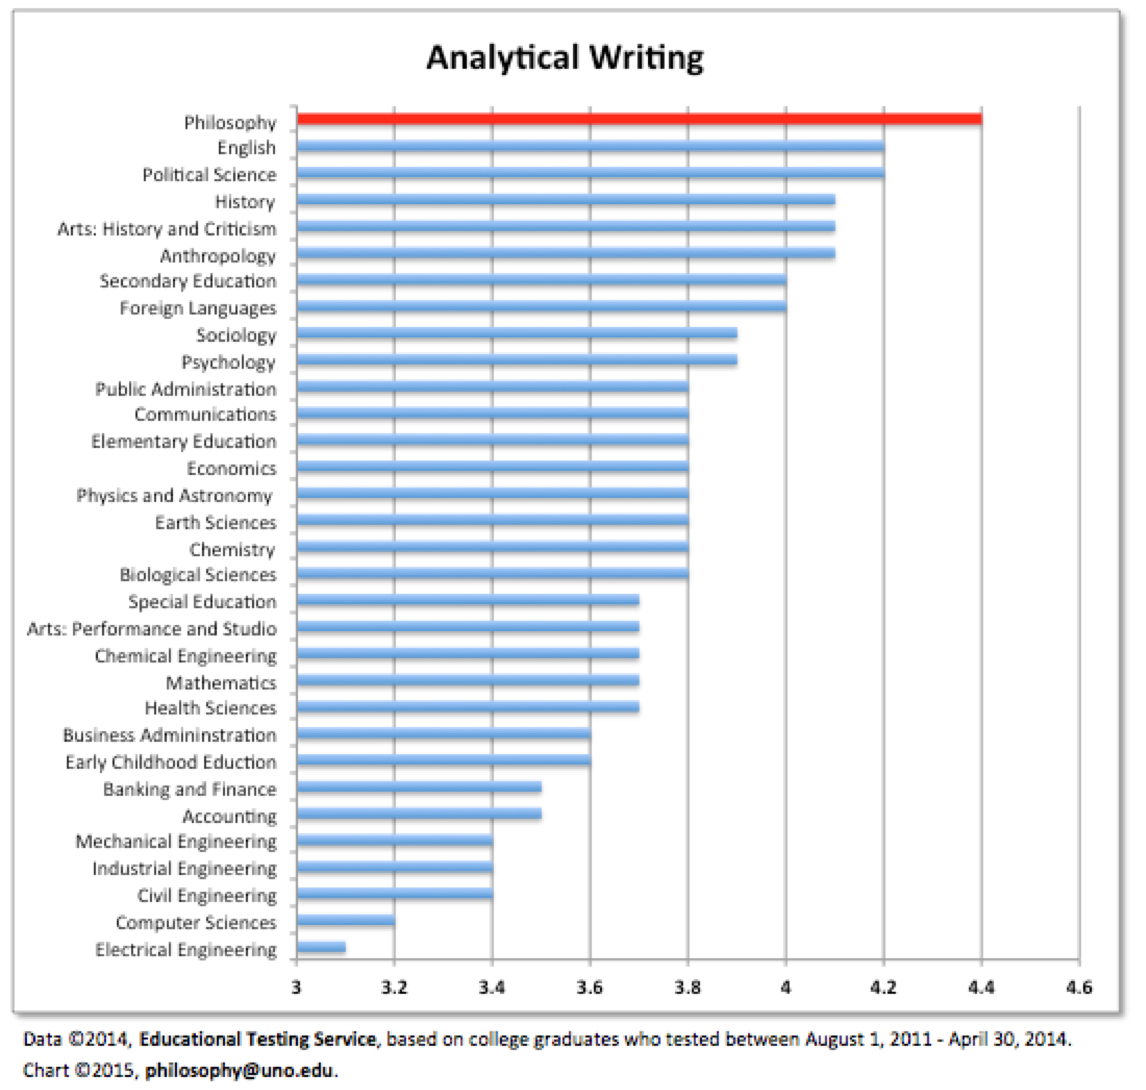 Chart showing analytical writing score by graduate.  philosophy ranks 1st of the 30-plus majors shown with a score of 4.4.